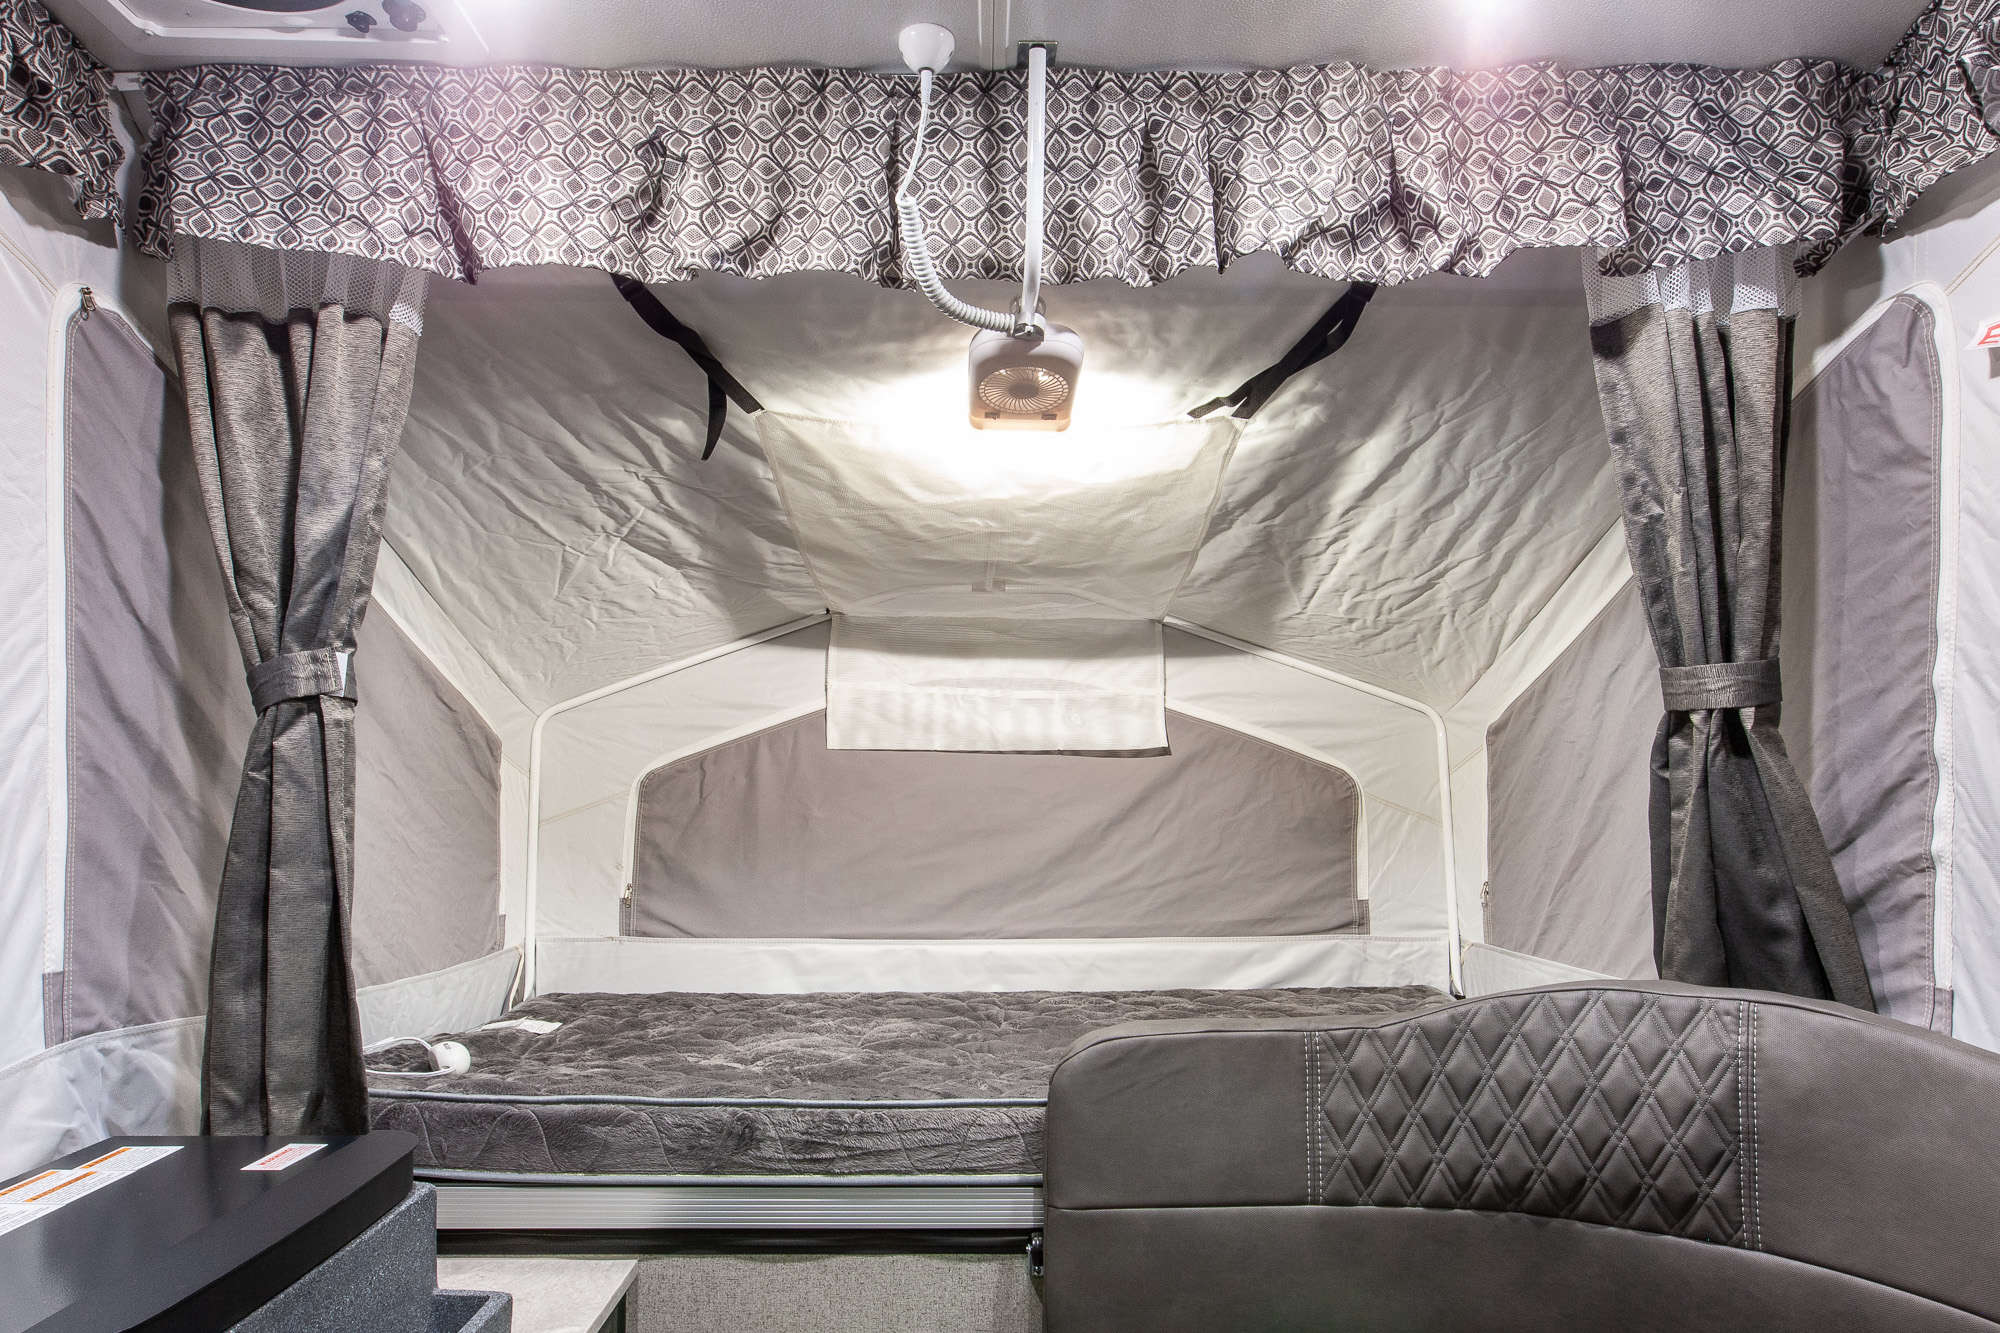 2020 Forest River Flagstaff Sports Enthusiast 176SE Folding Camper Interior Image